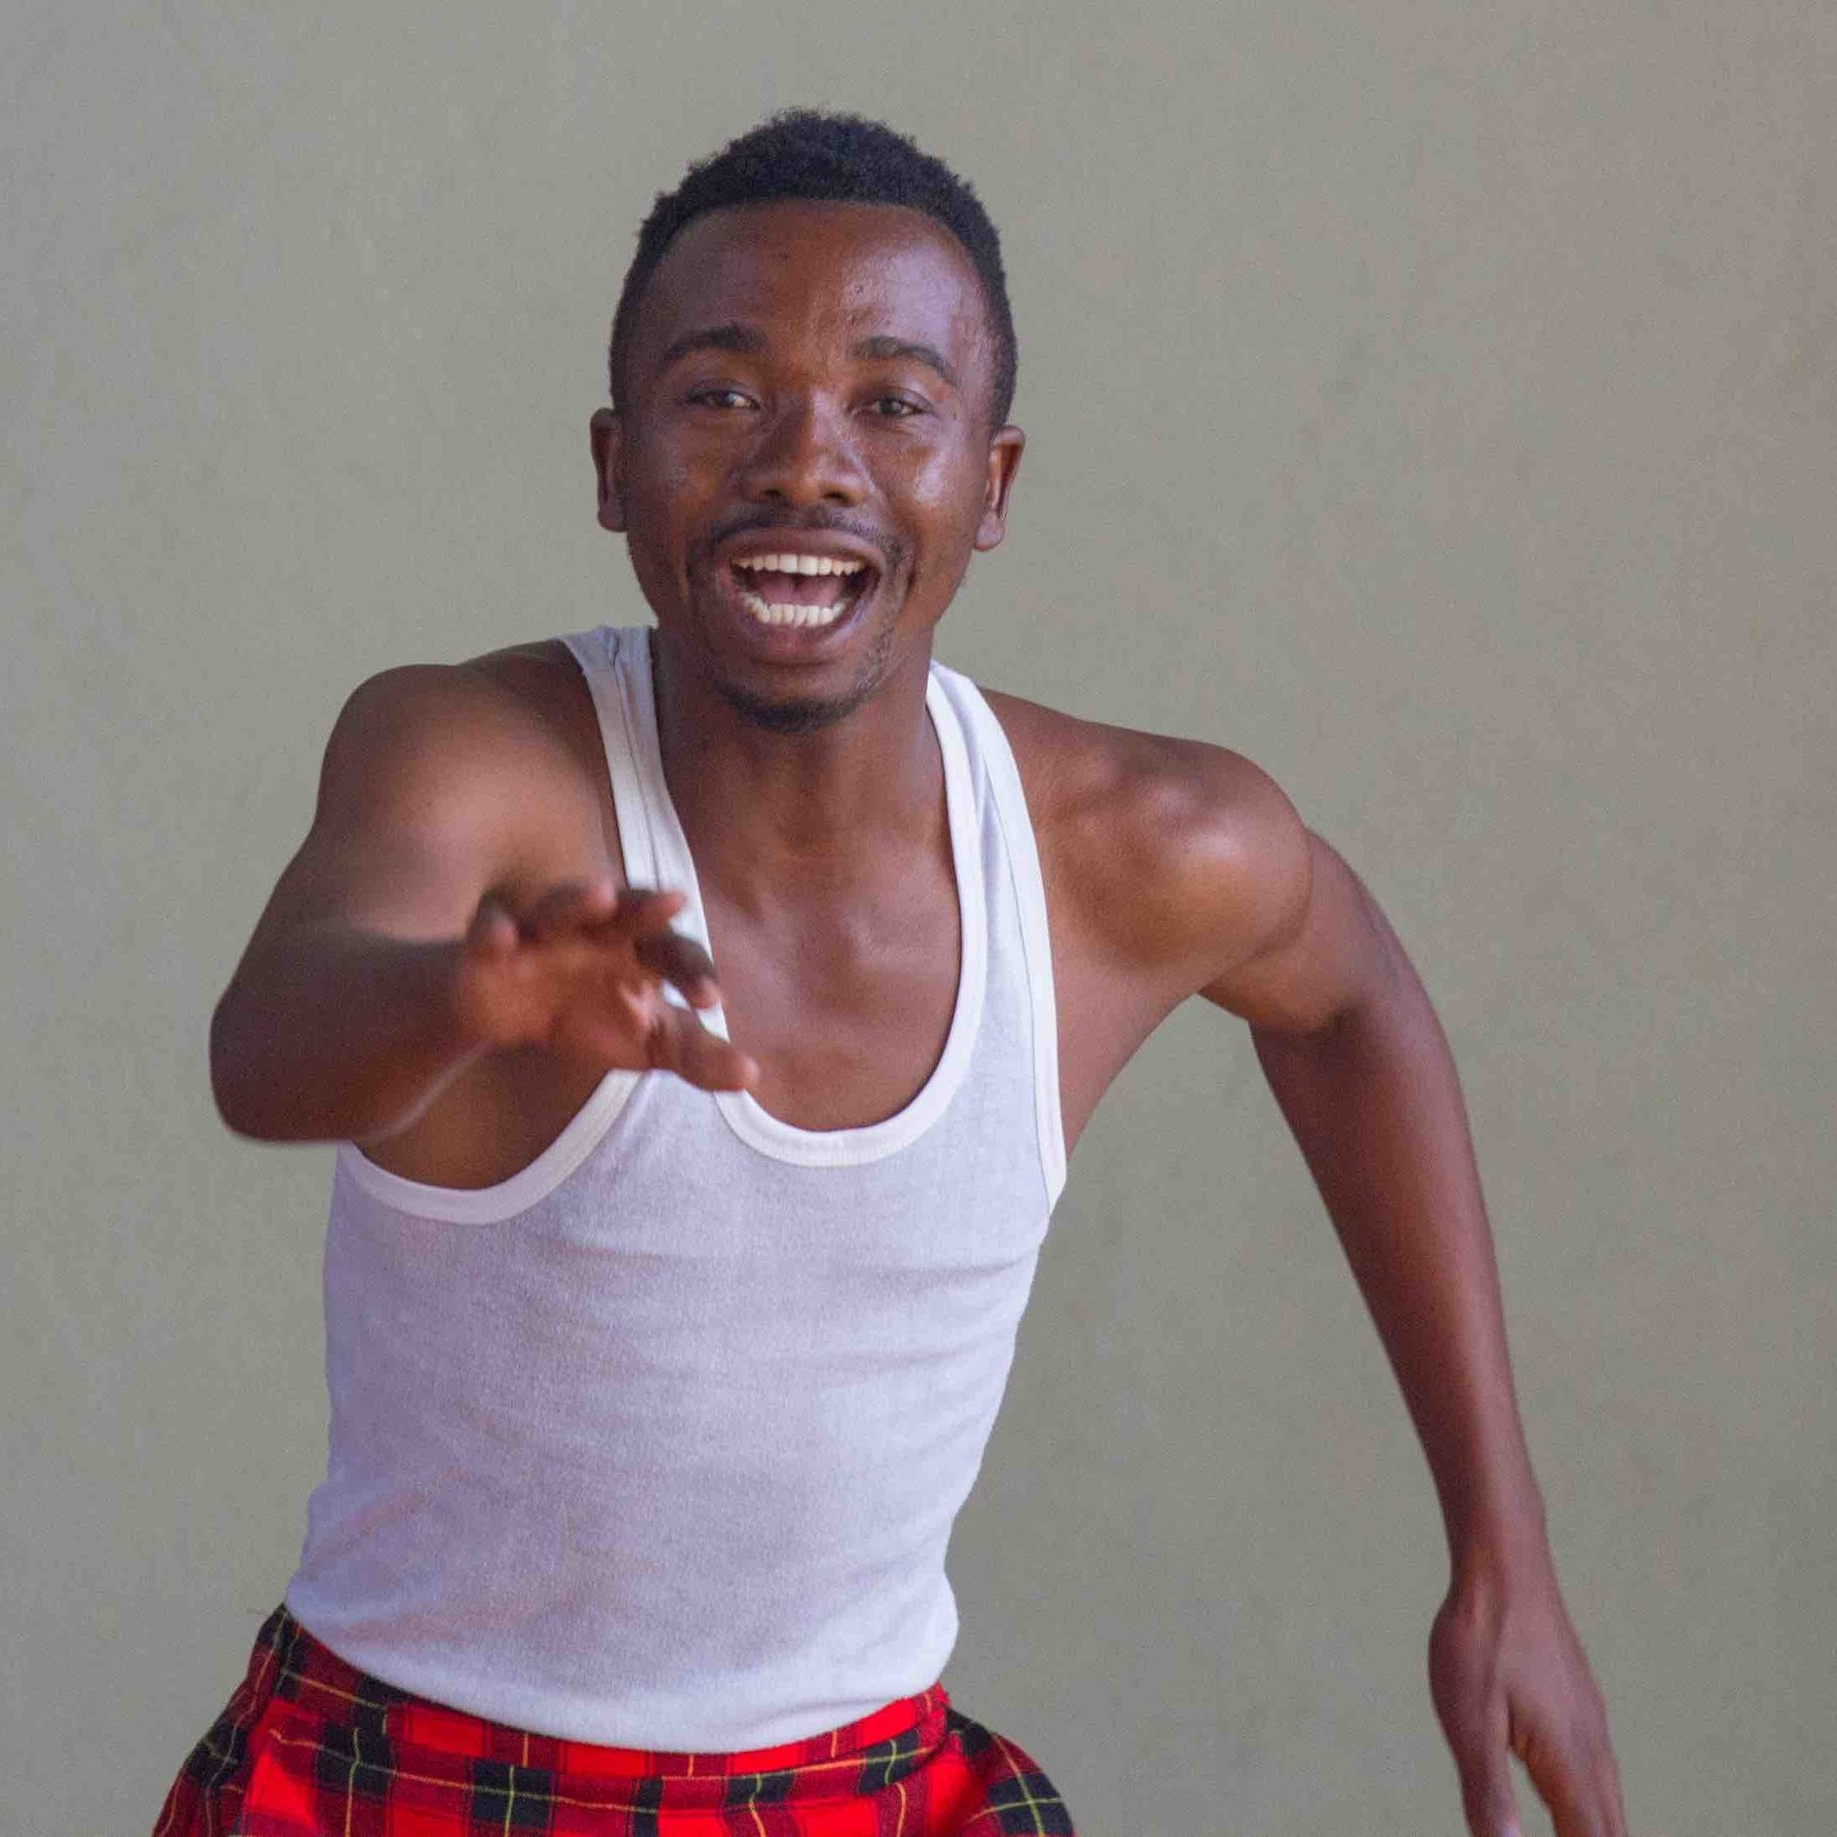 MARIJANI ALLY MROPE - Marijani began by studying dancing,drumming and acting in the Cultural Revolution Group in Leganga, Usa River. He also studied African dance at the United African Alliance Community Center (UAACC). As well as dancing, he has acted in films, and does stand up comedy.